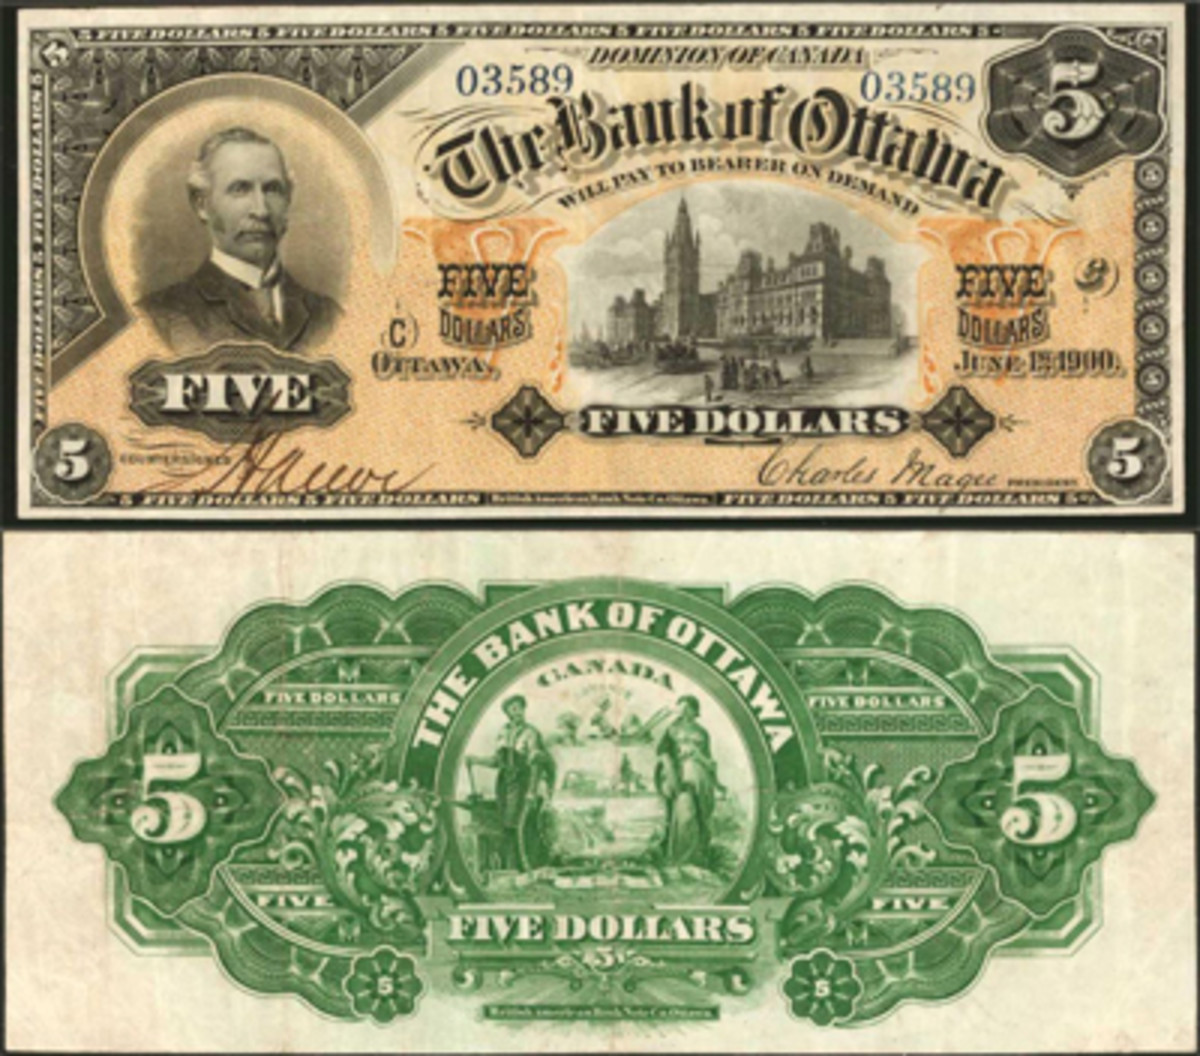 Lot #30135 was a Canada 1900 The Bank of Ottawa 5 dollars. Graded PMG VF-25 EPQ, this note hammered above estimate at $30,000.